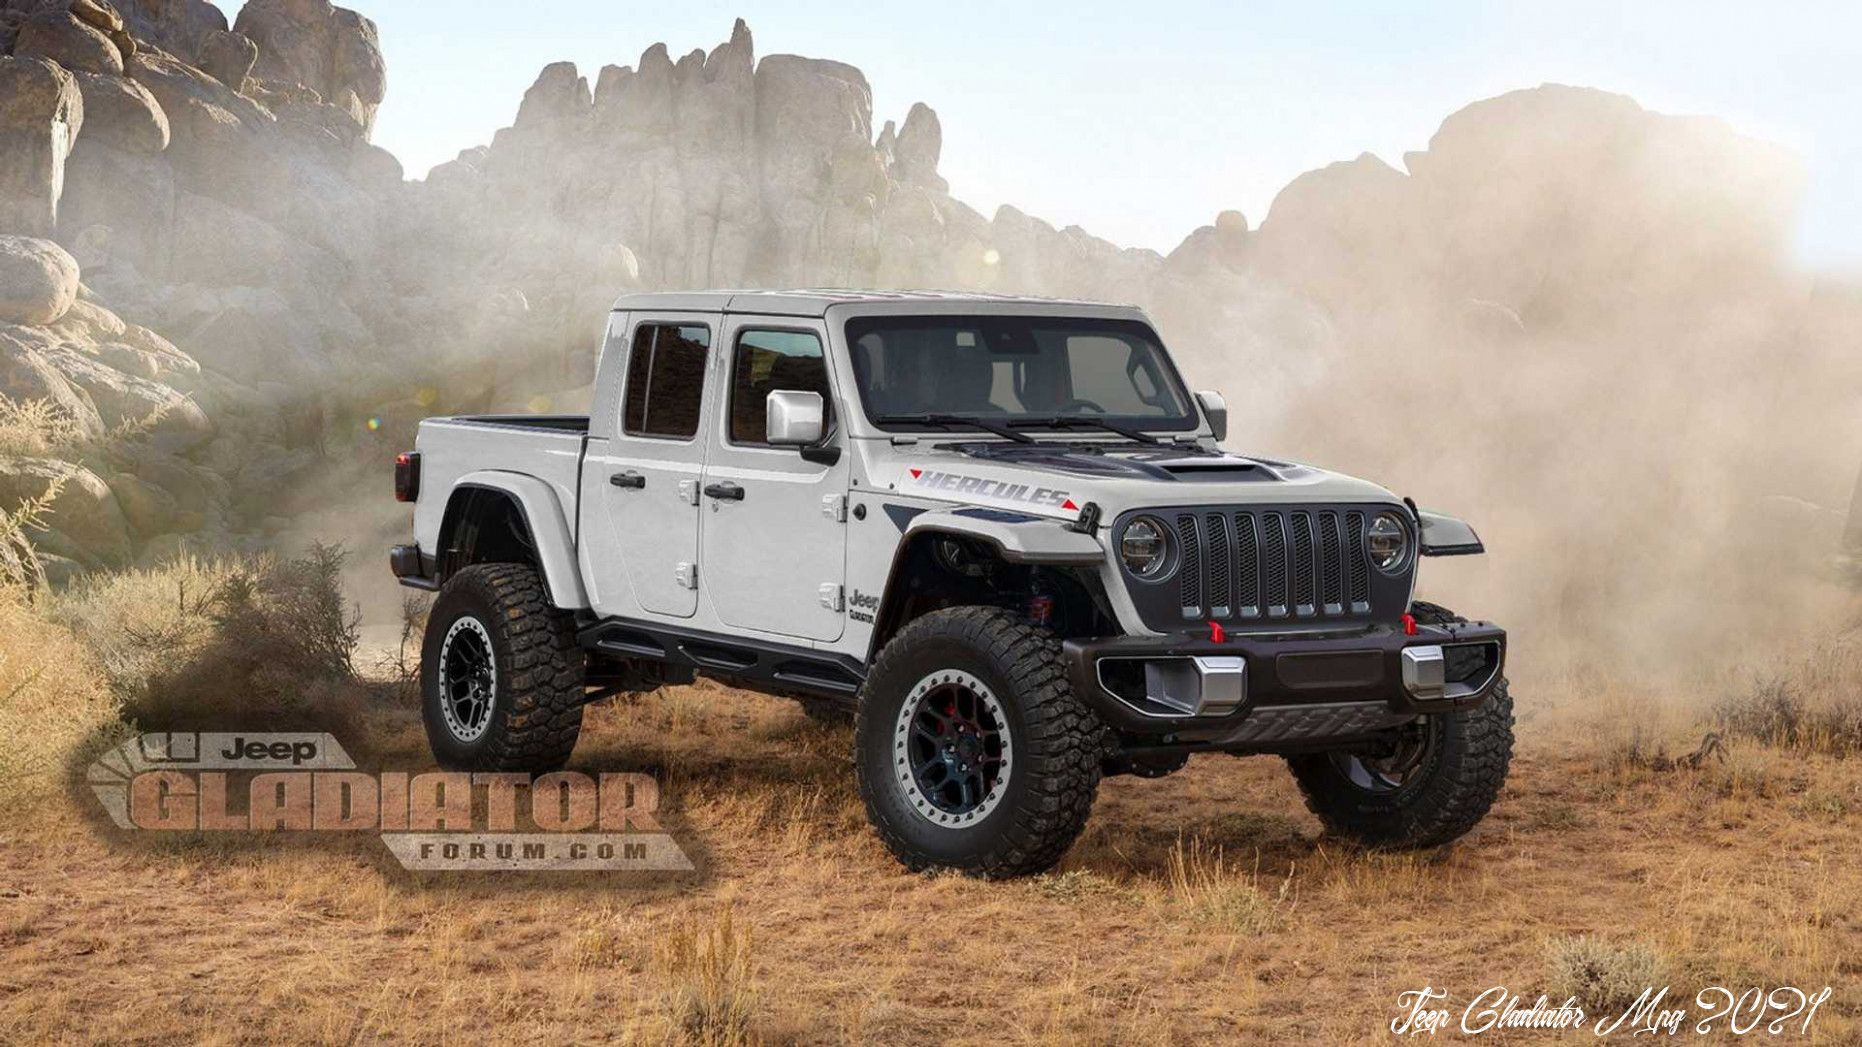 Jeep Gladiator Mpg 2021 Price In 2020 Jeep Gladiator Lifted Jeep Jeep Truck